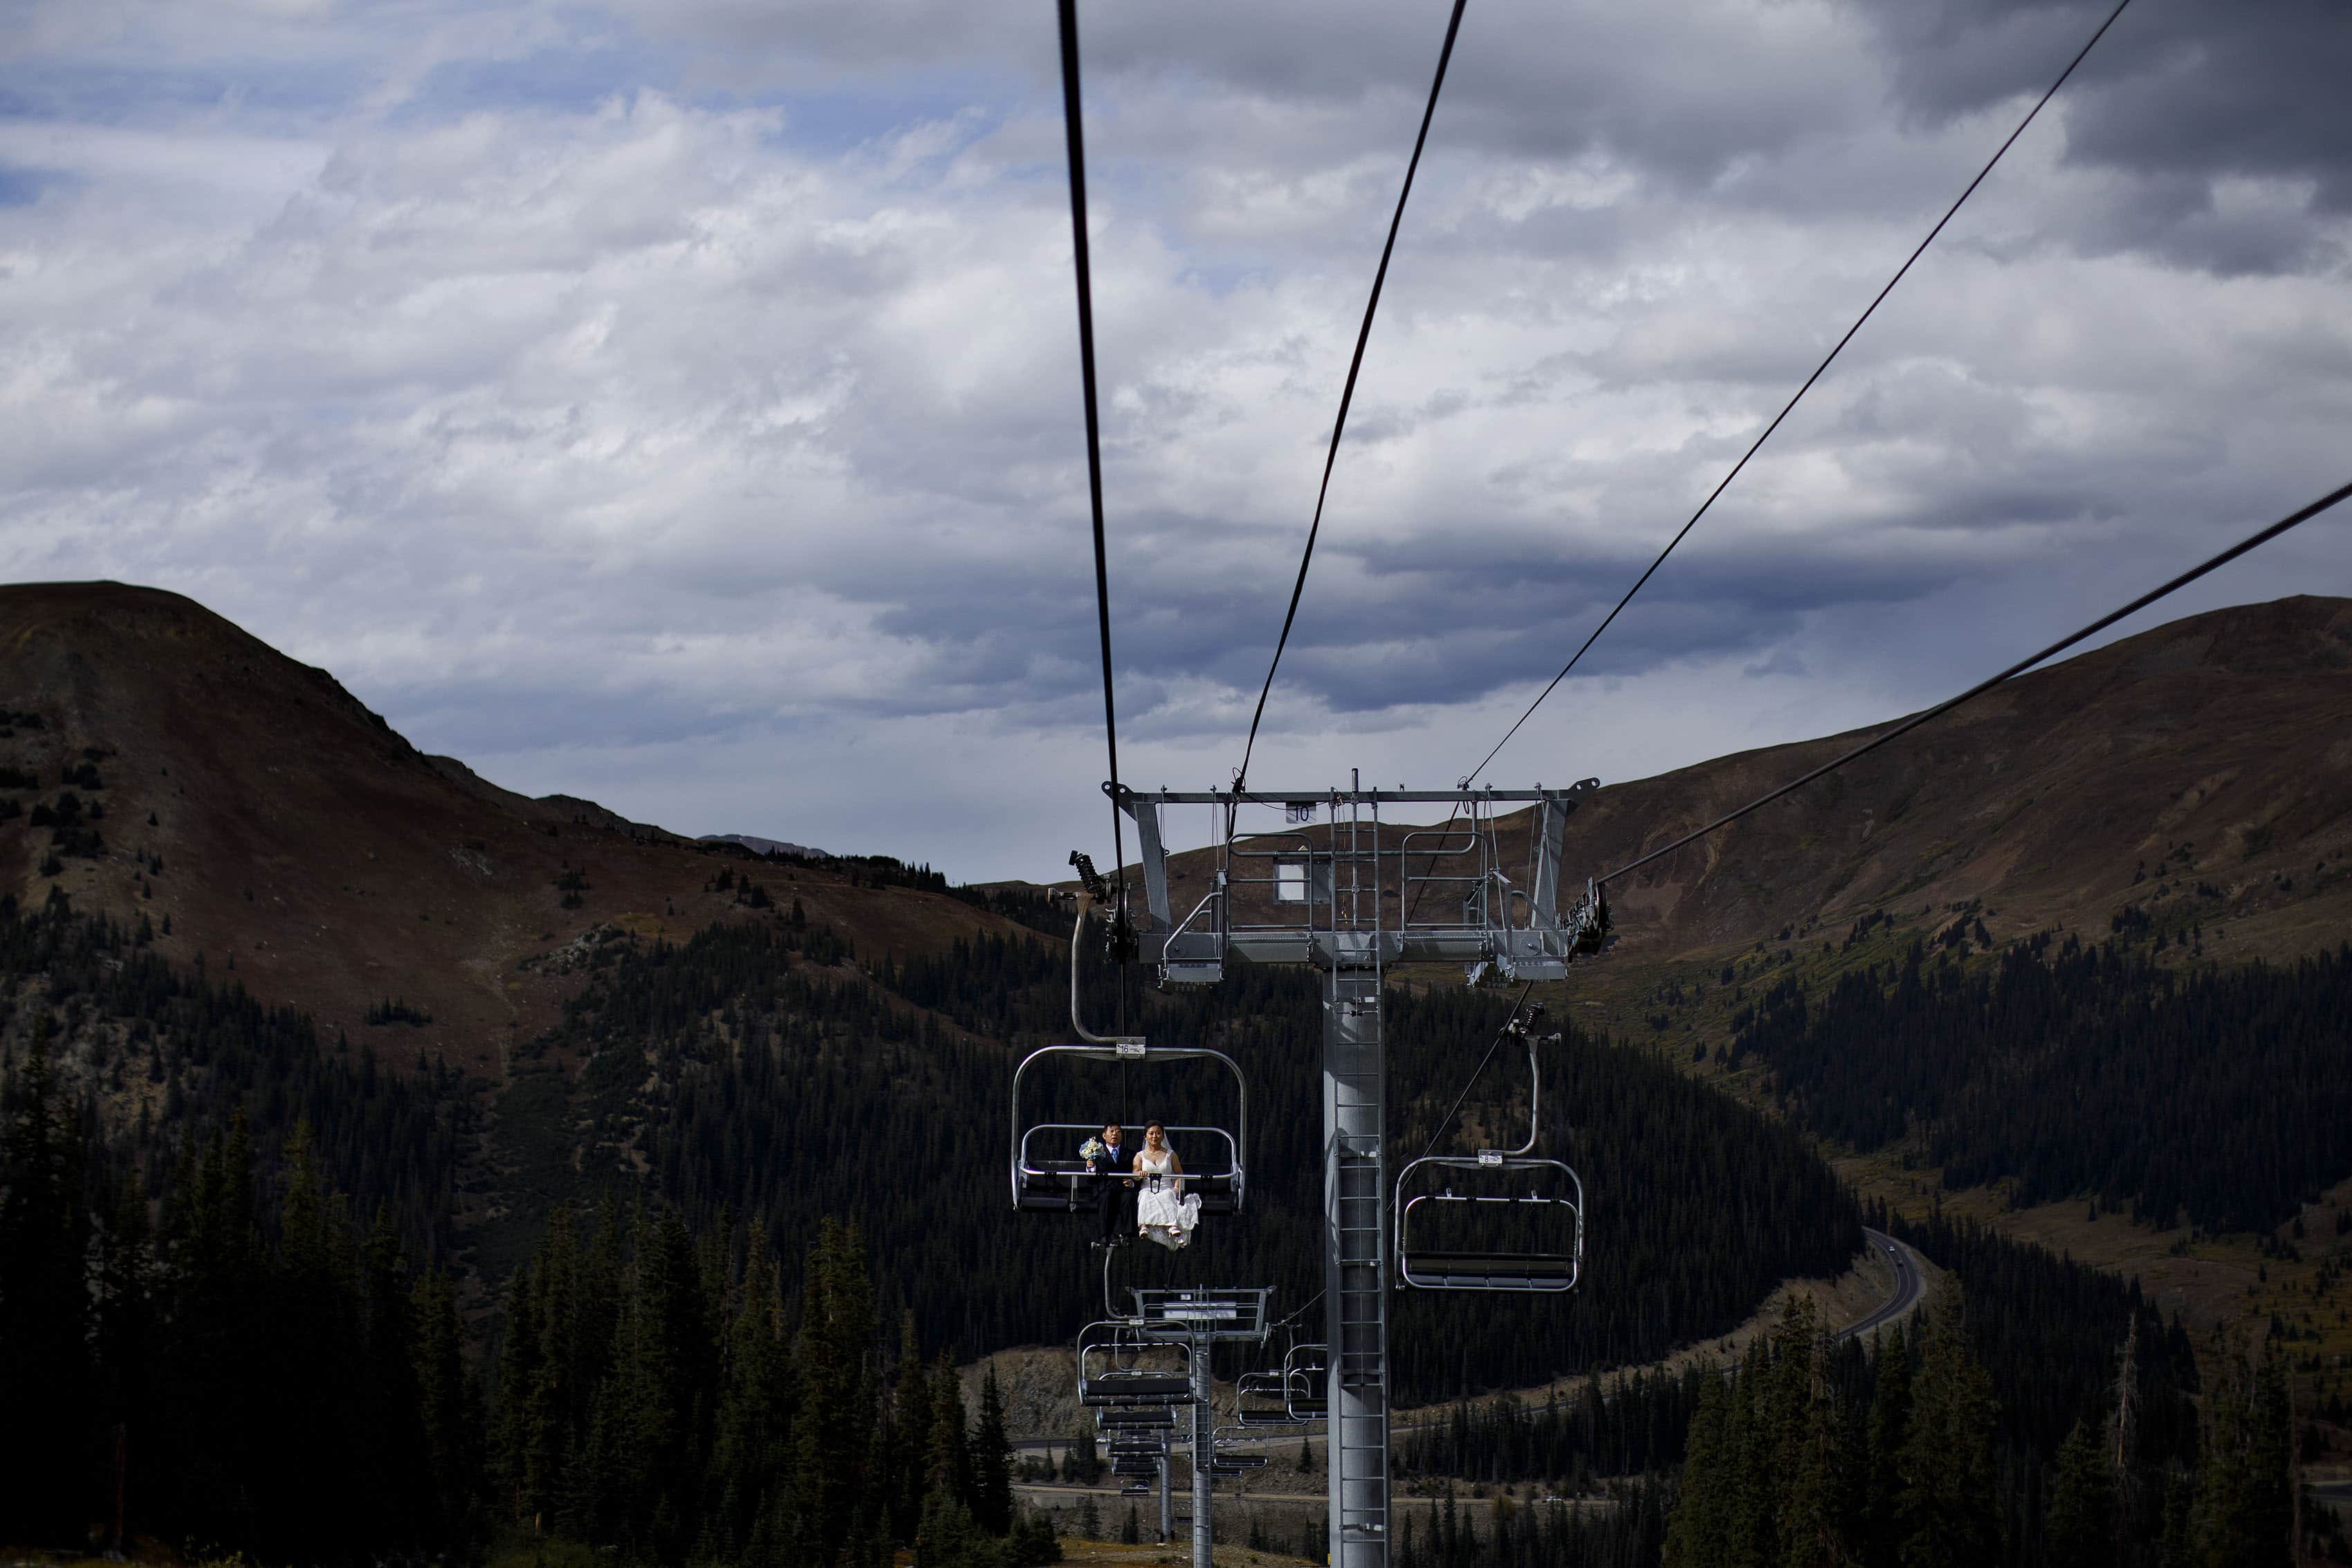 Xinya rides the Black Mountain Express chair lift with her father to the ceremony at Arapahoe Basin